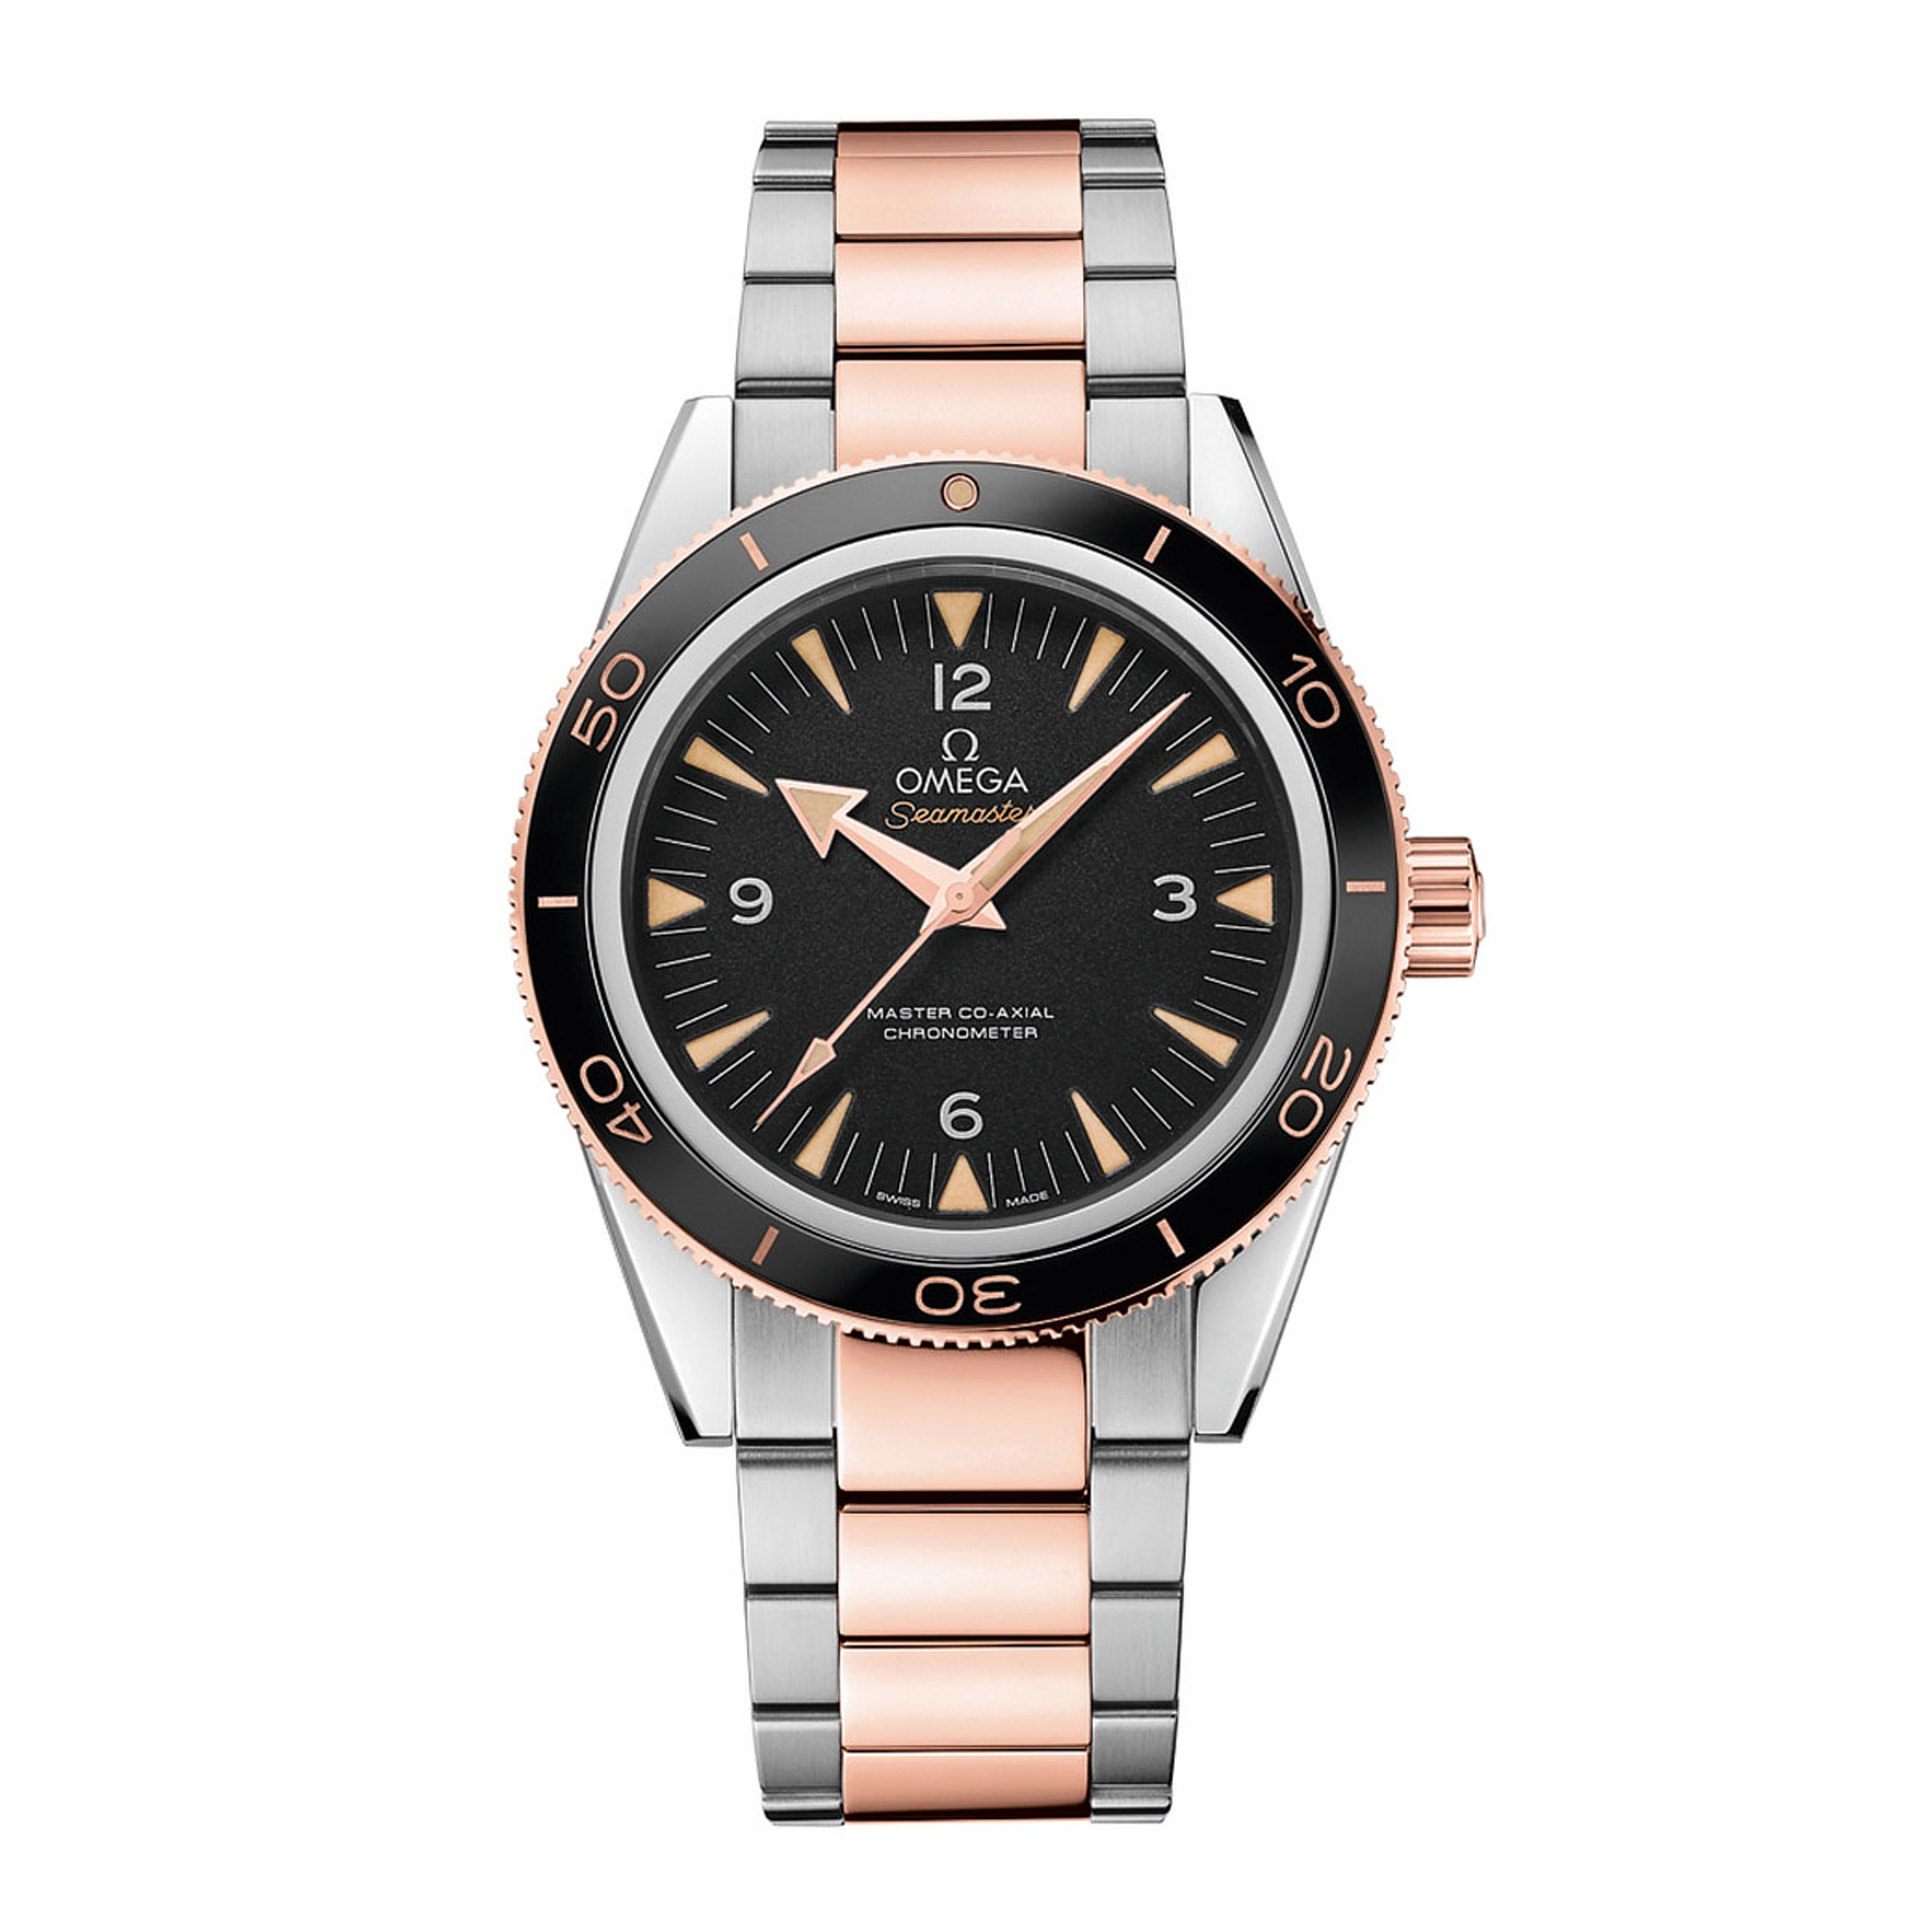 Gents OMEGA Seamaster Planet Ocean 300m Steel and Gold Watch